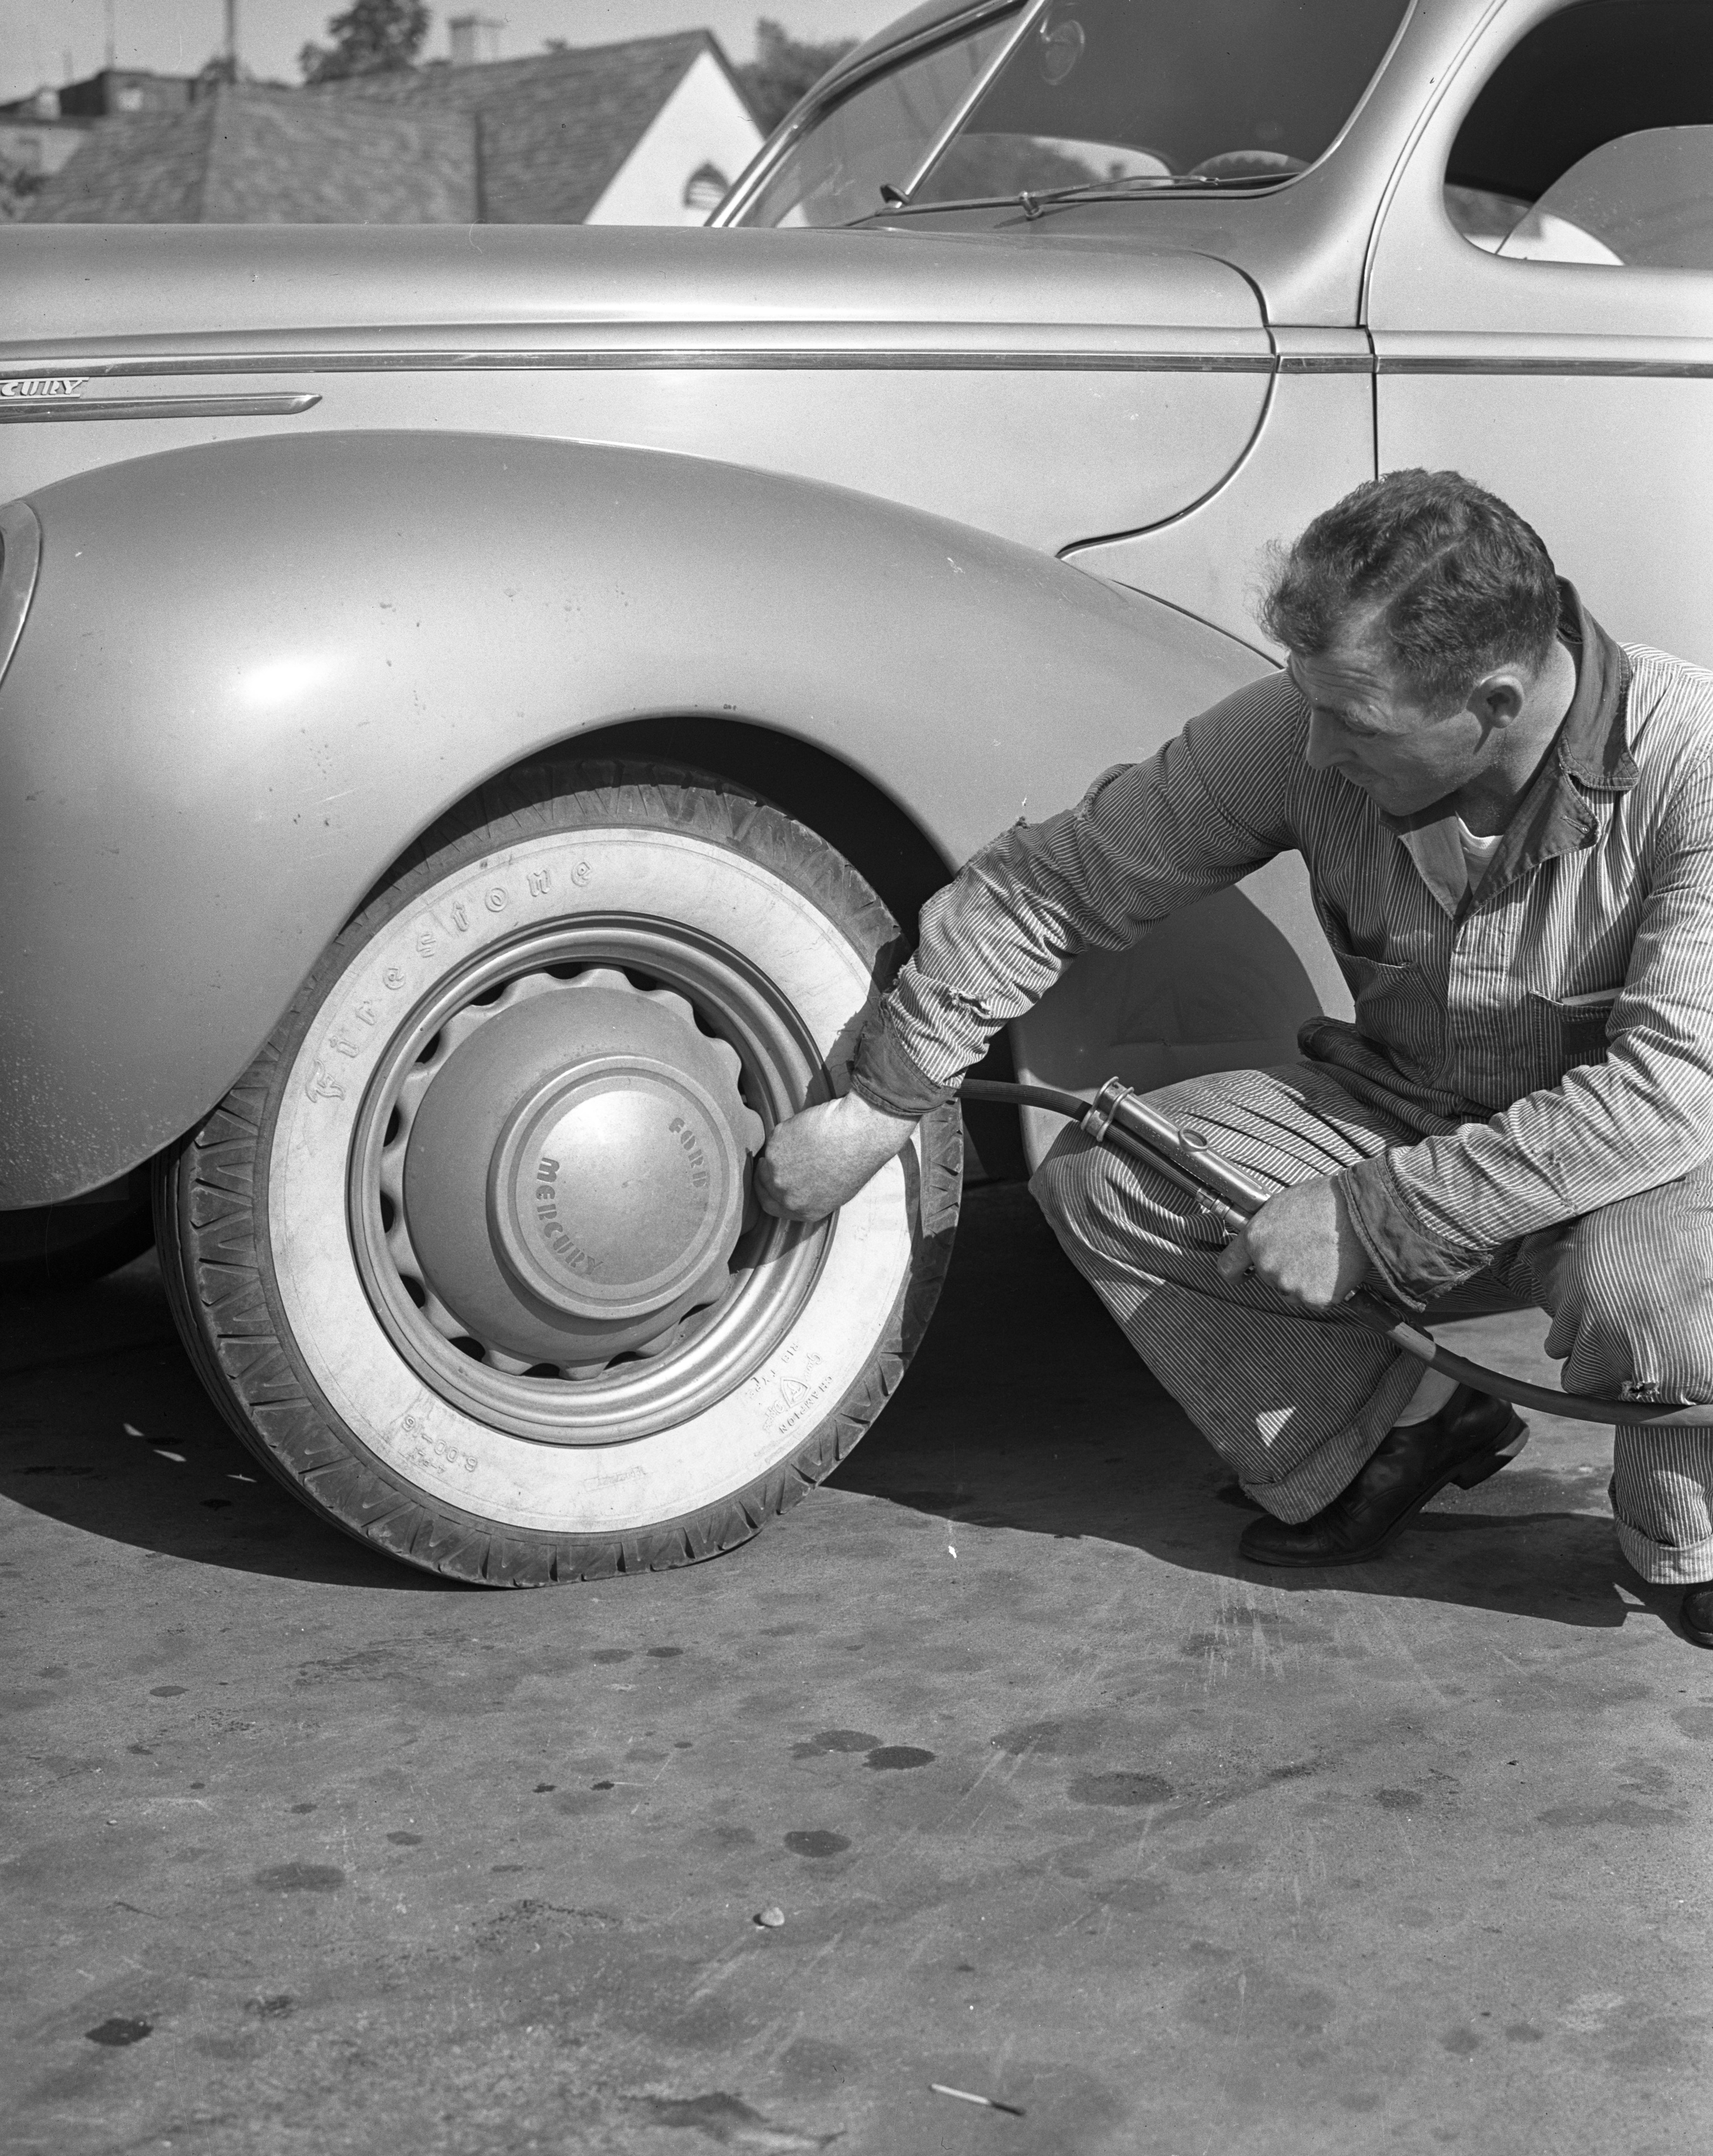 Bobby and the Old Professor: Man inflating a tire, July 1939 image